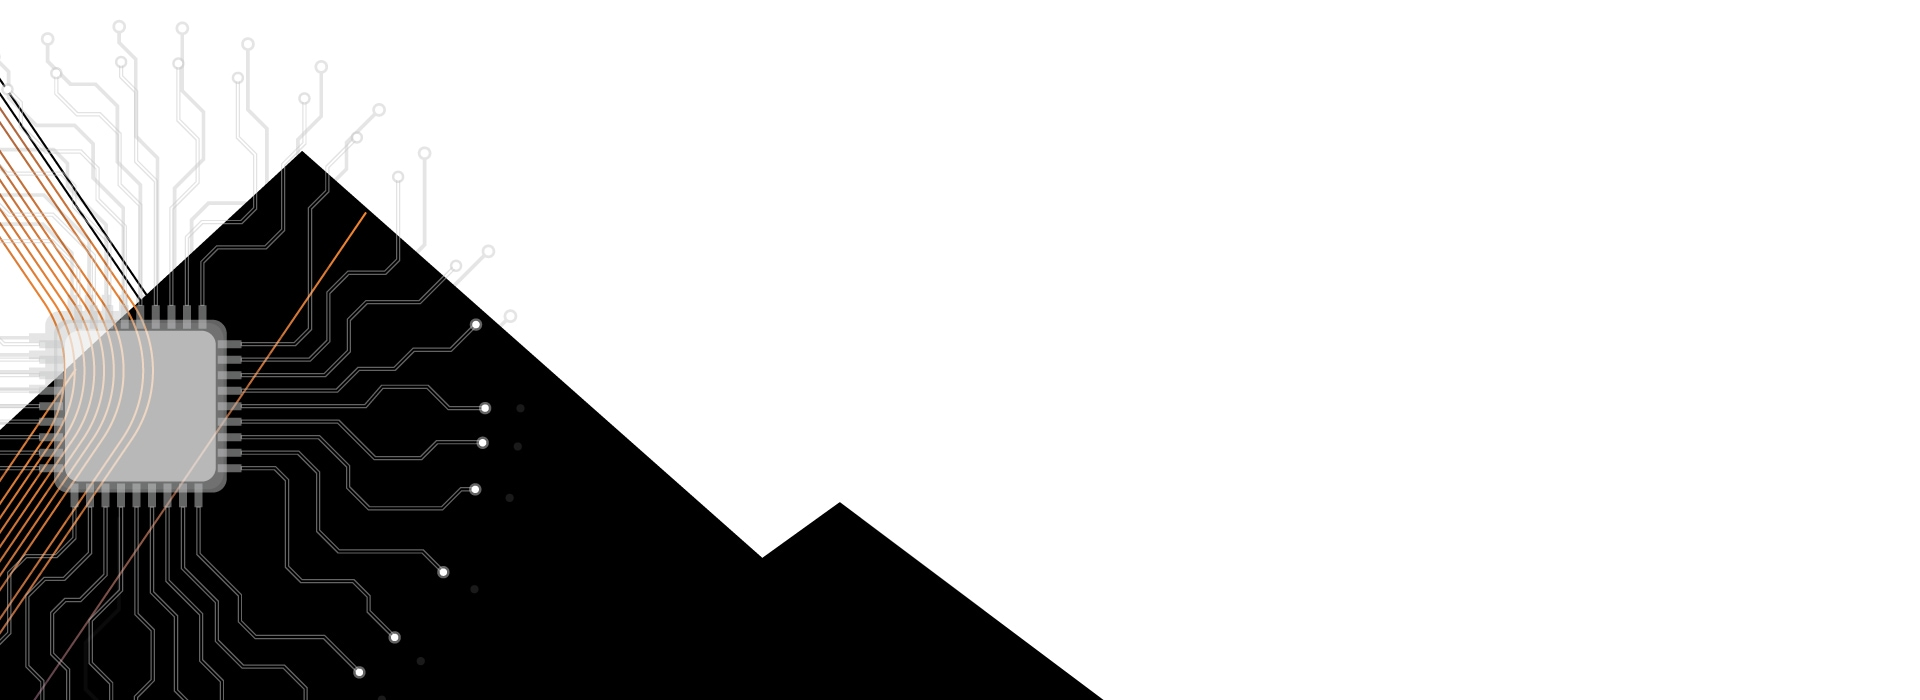 nia-conglomerate-banner